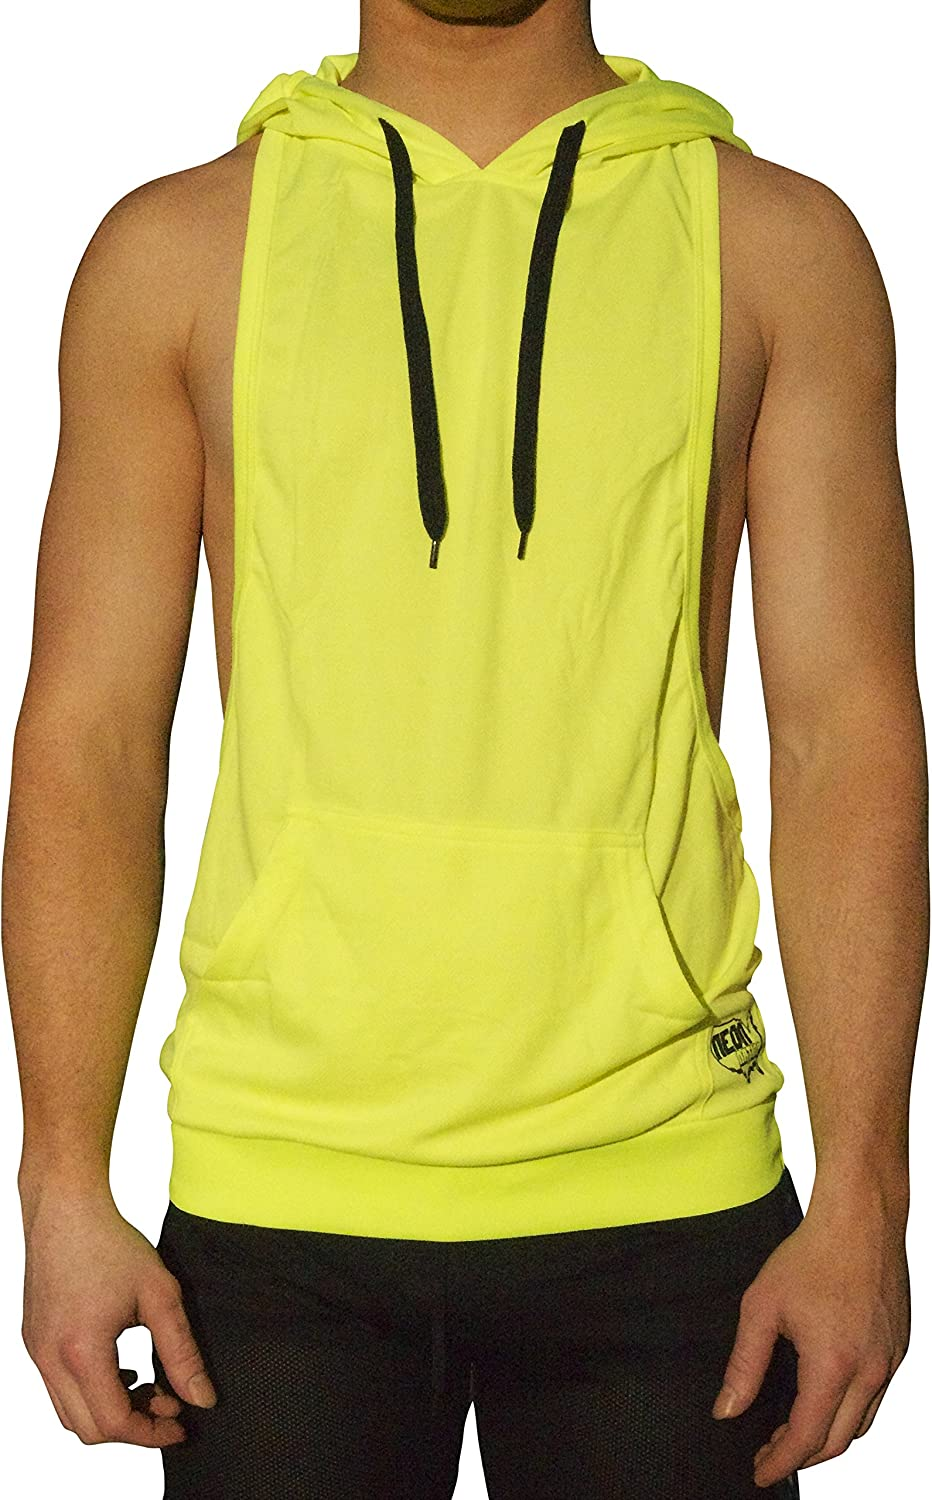 NeonNation Mens Muscle Cut Athletic Bodybuilder Stringer Tank Top Hoodie